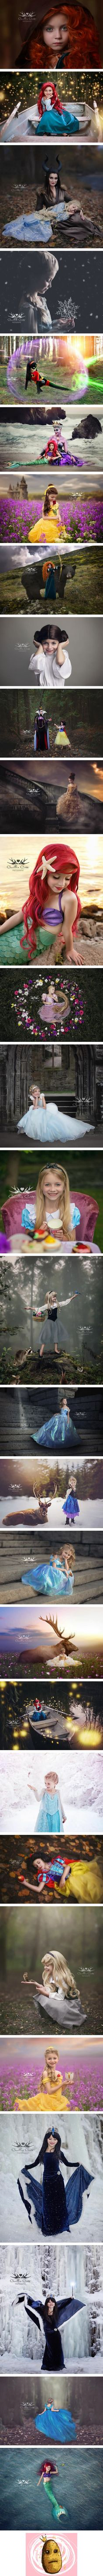 This 7-year-old lara and her mom Camillia have nailed the disney dress-up game #cosplay #costume